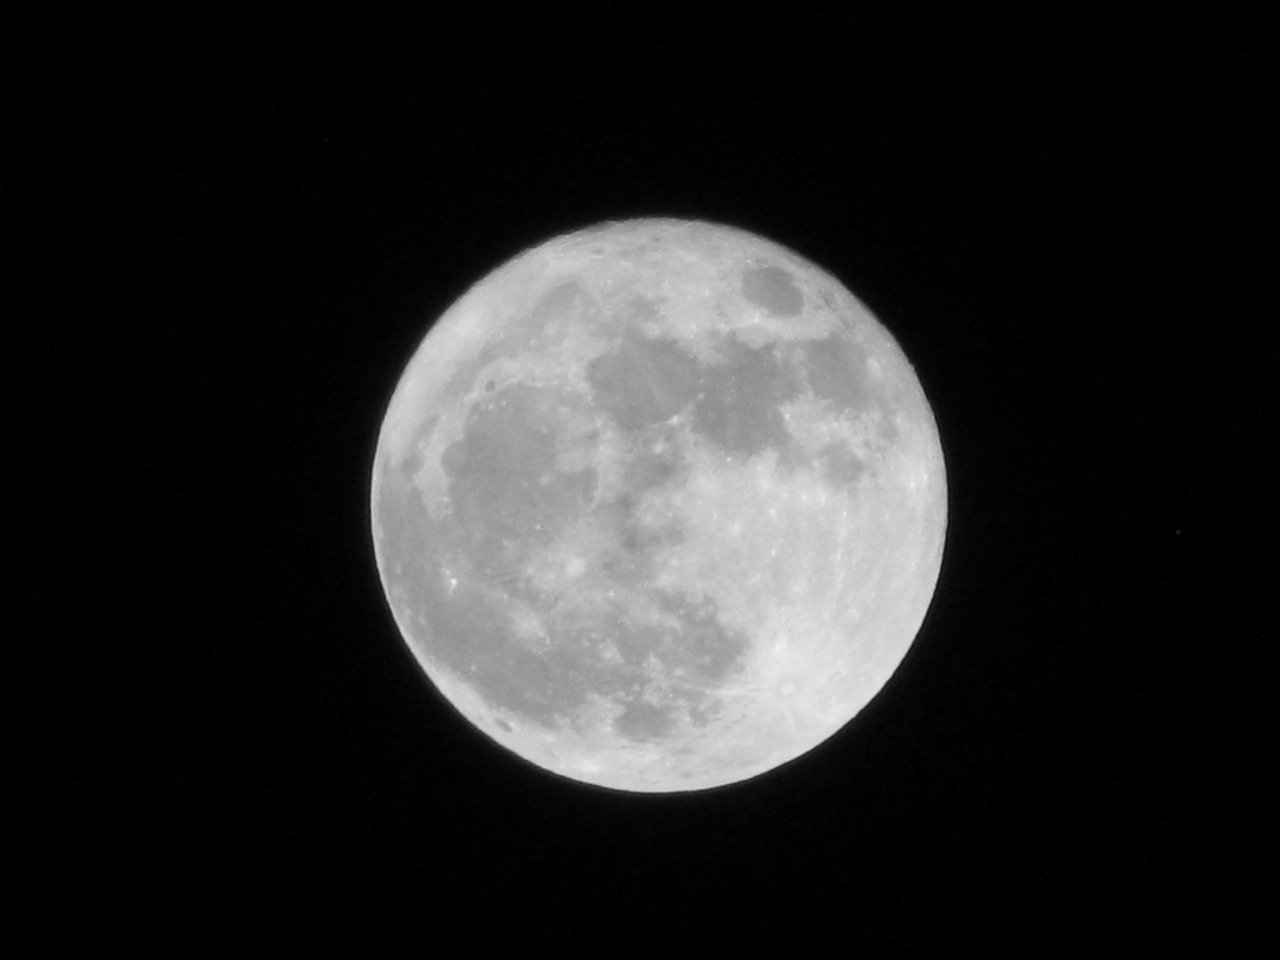 #supermoon  bushwick, new york, ny  3.19.2011